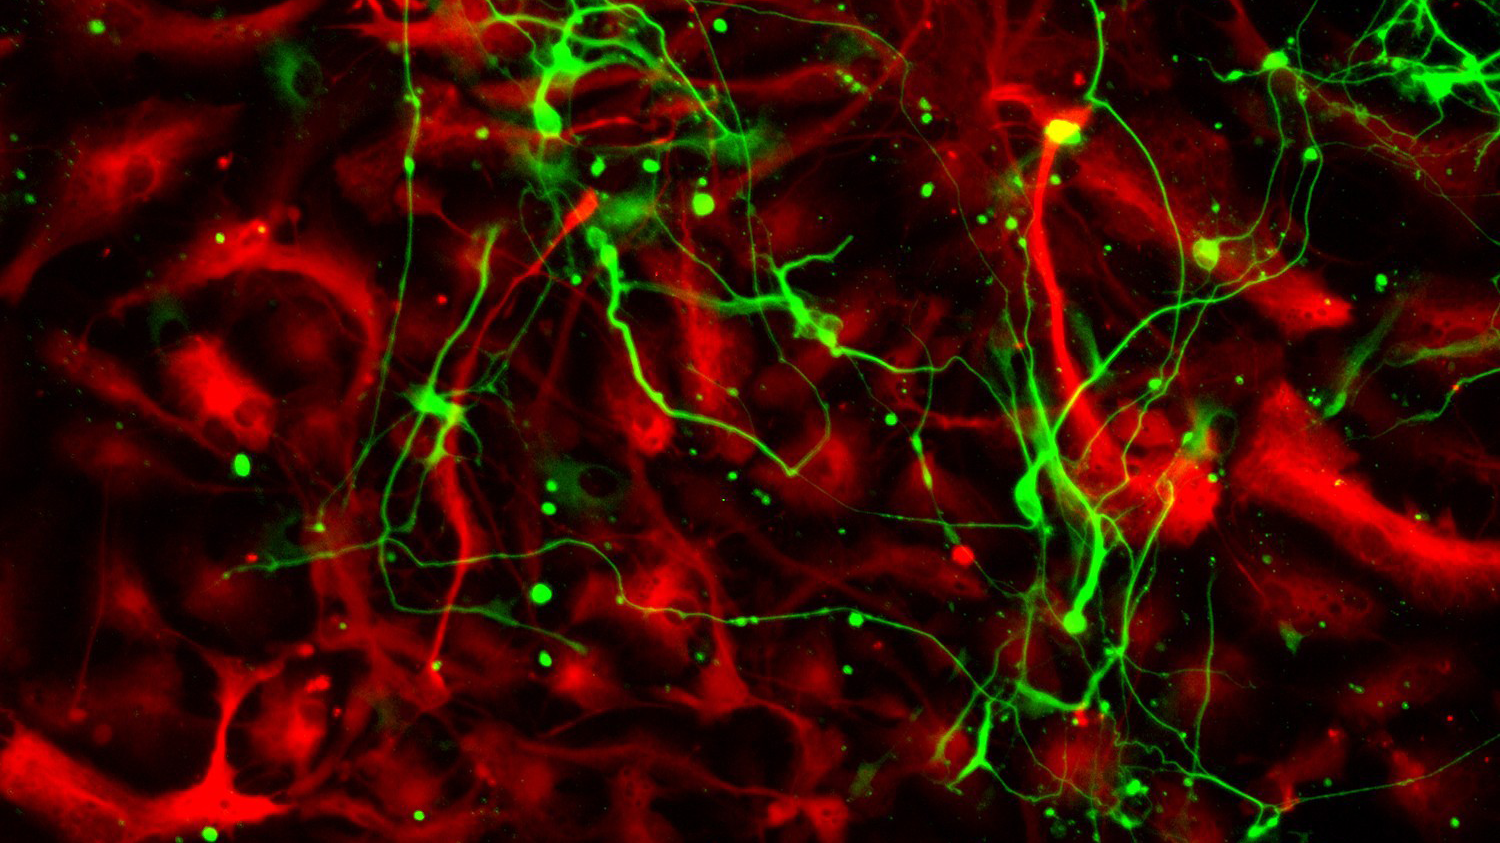 Image of astrocytes in red and some green